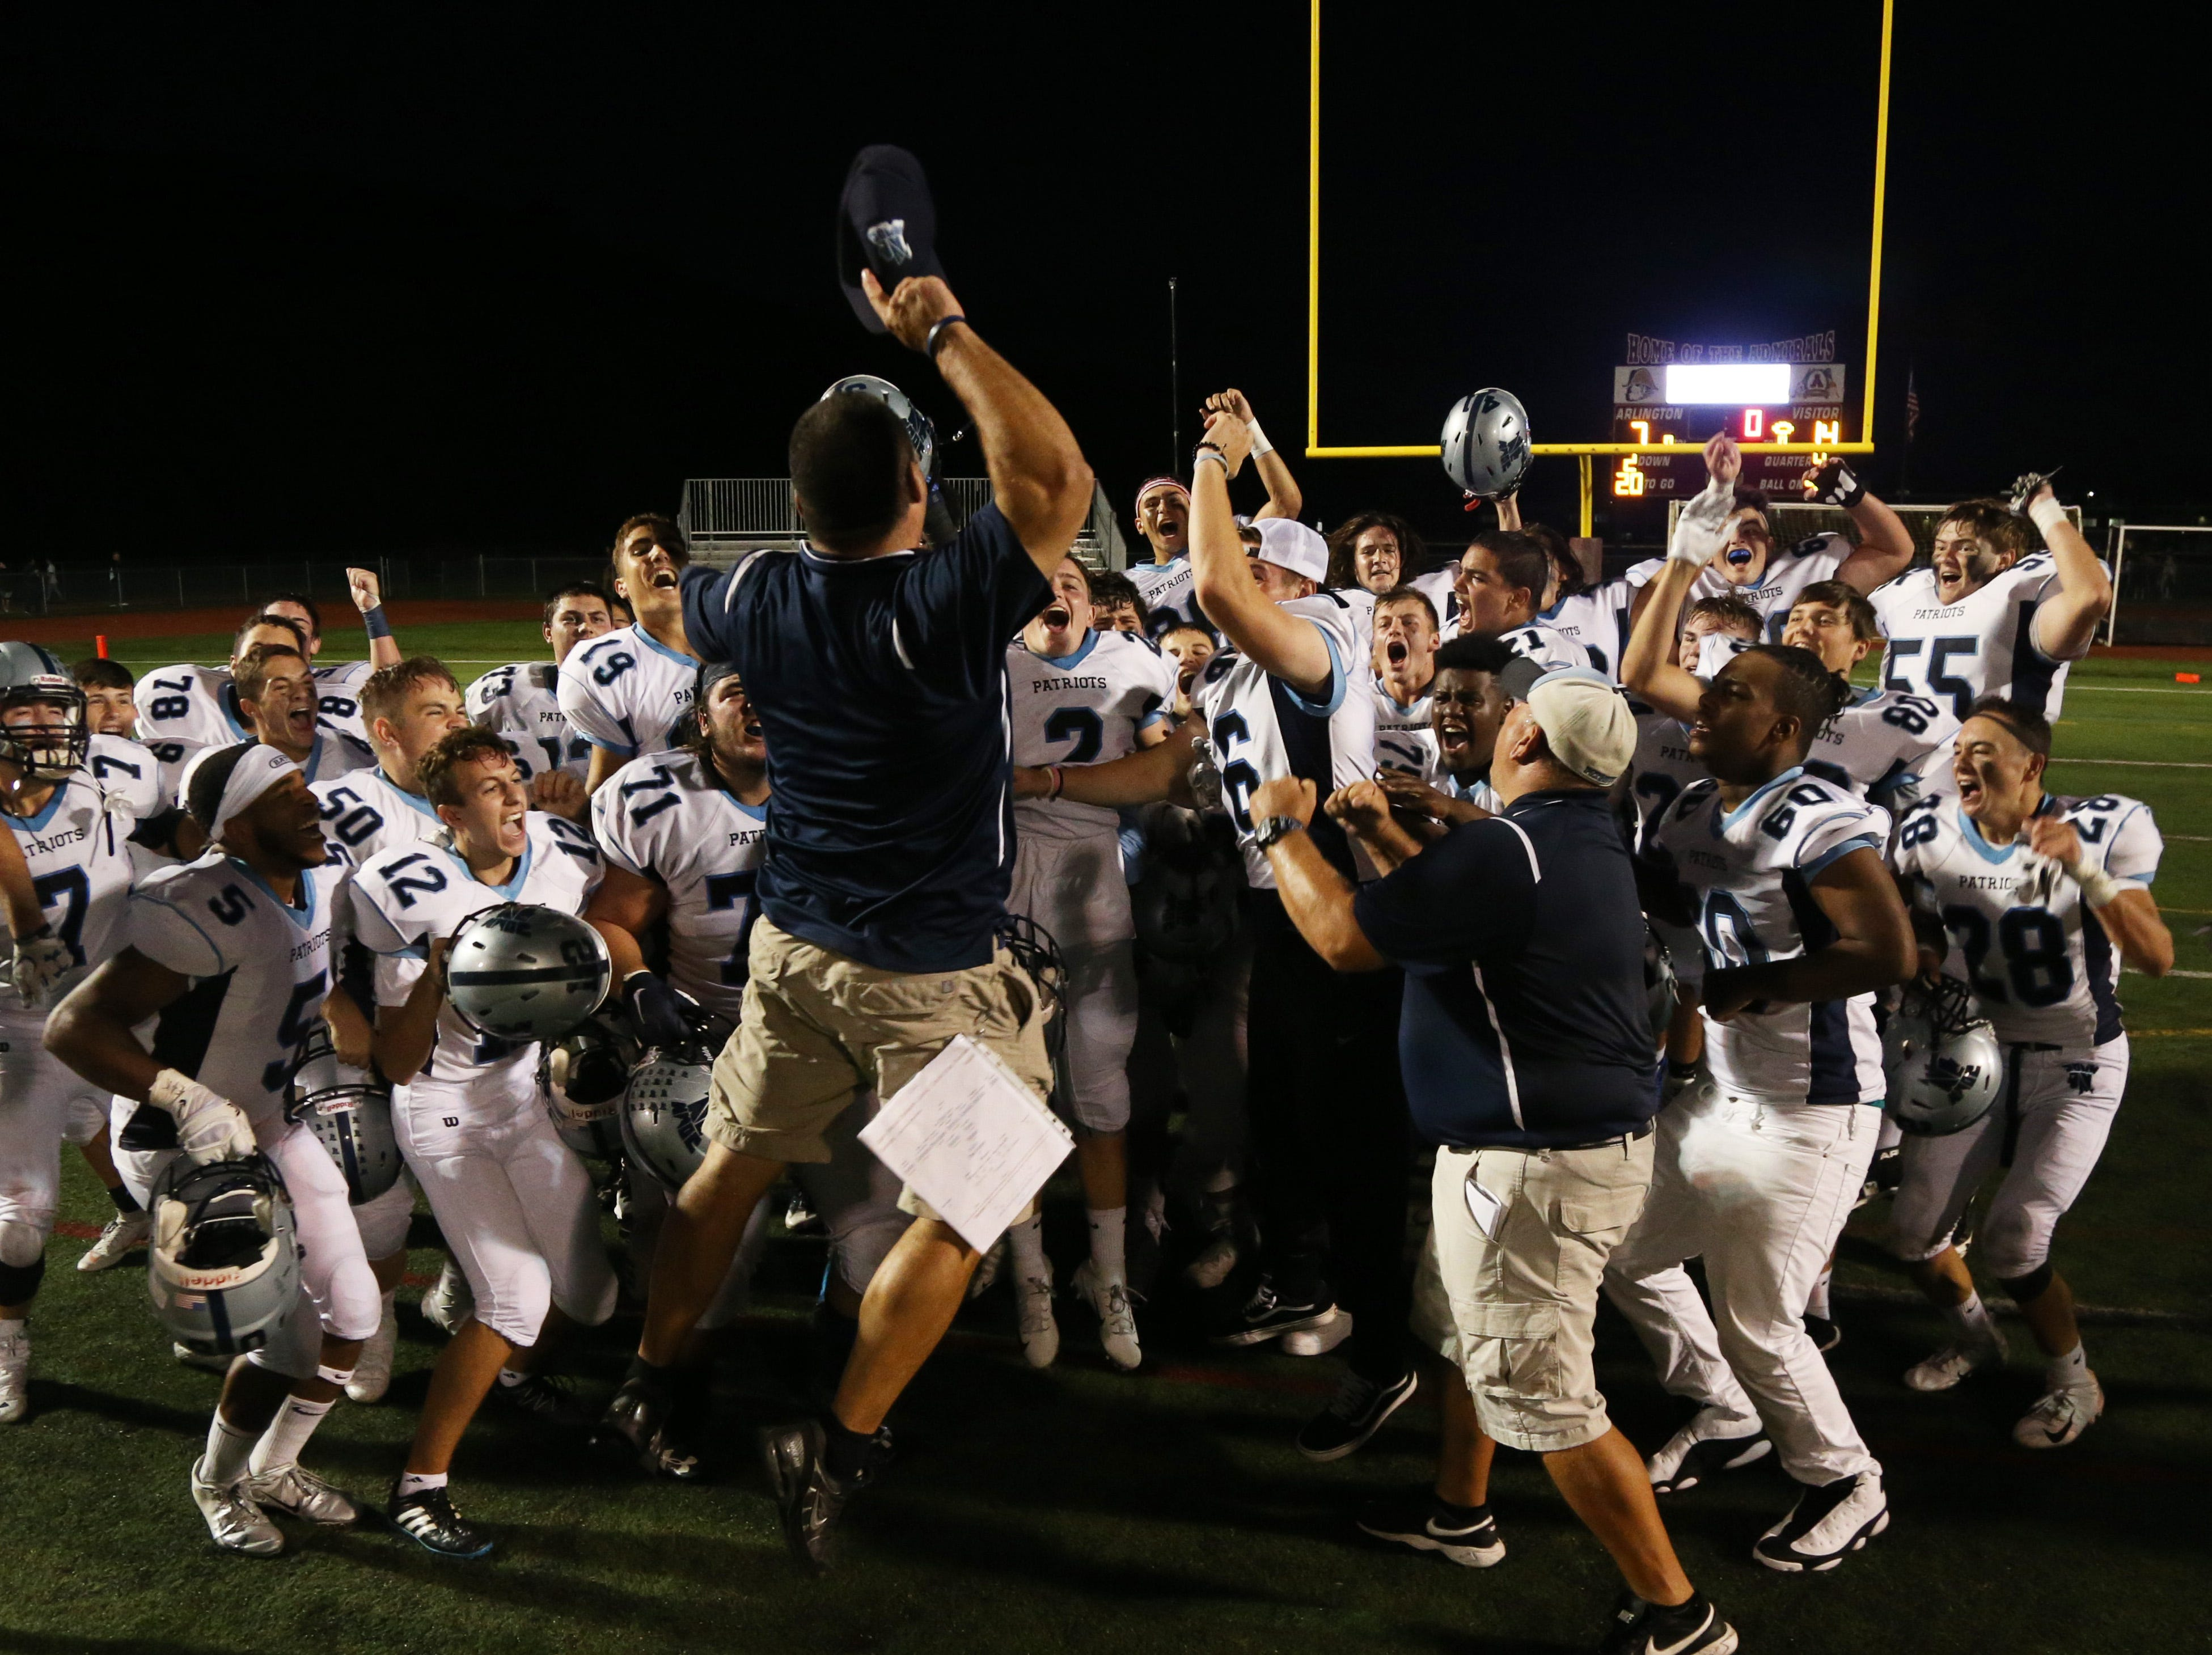 John Jay assistant coach Bob Schumacher leaps as he leads the cheer after the Patriots' comeback win over rival Arlington on Friday.